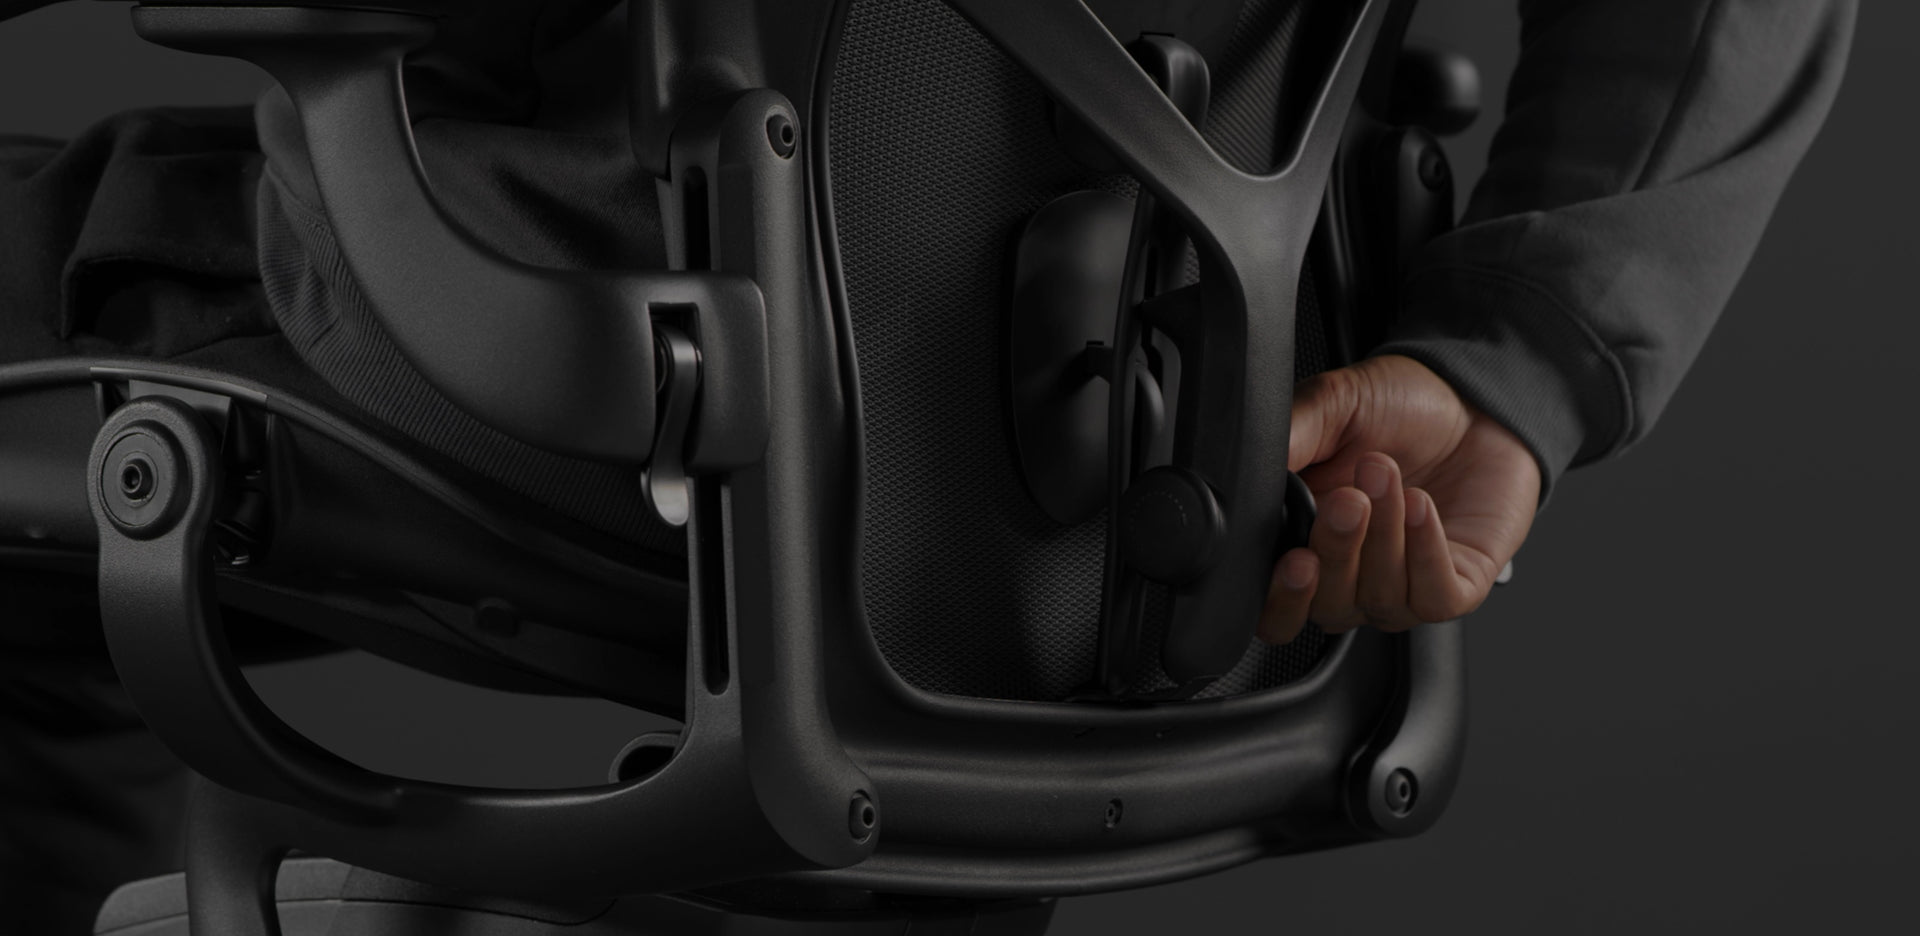 A close-up video of a black Embody Gaming Chair arm being adjusted by a person in front of a desk.